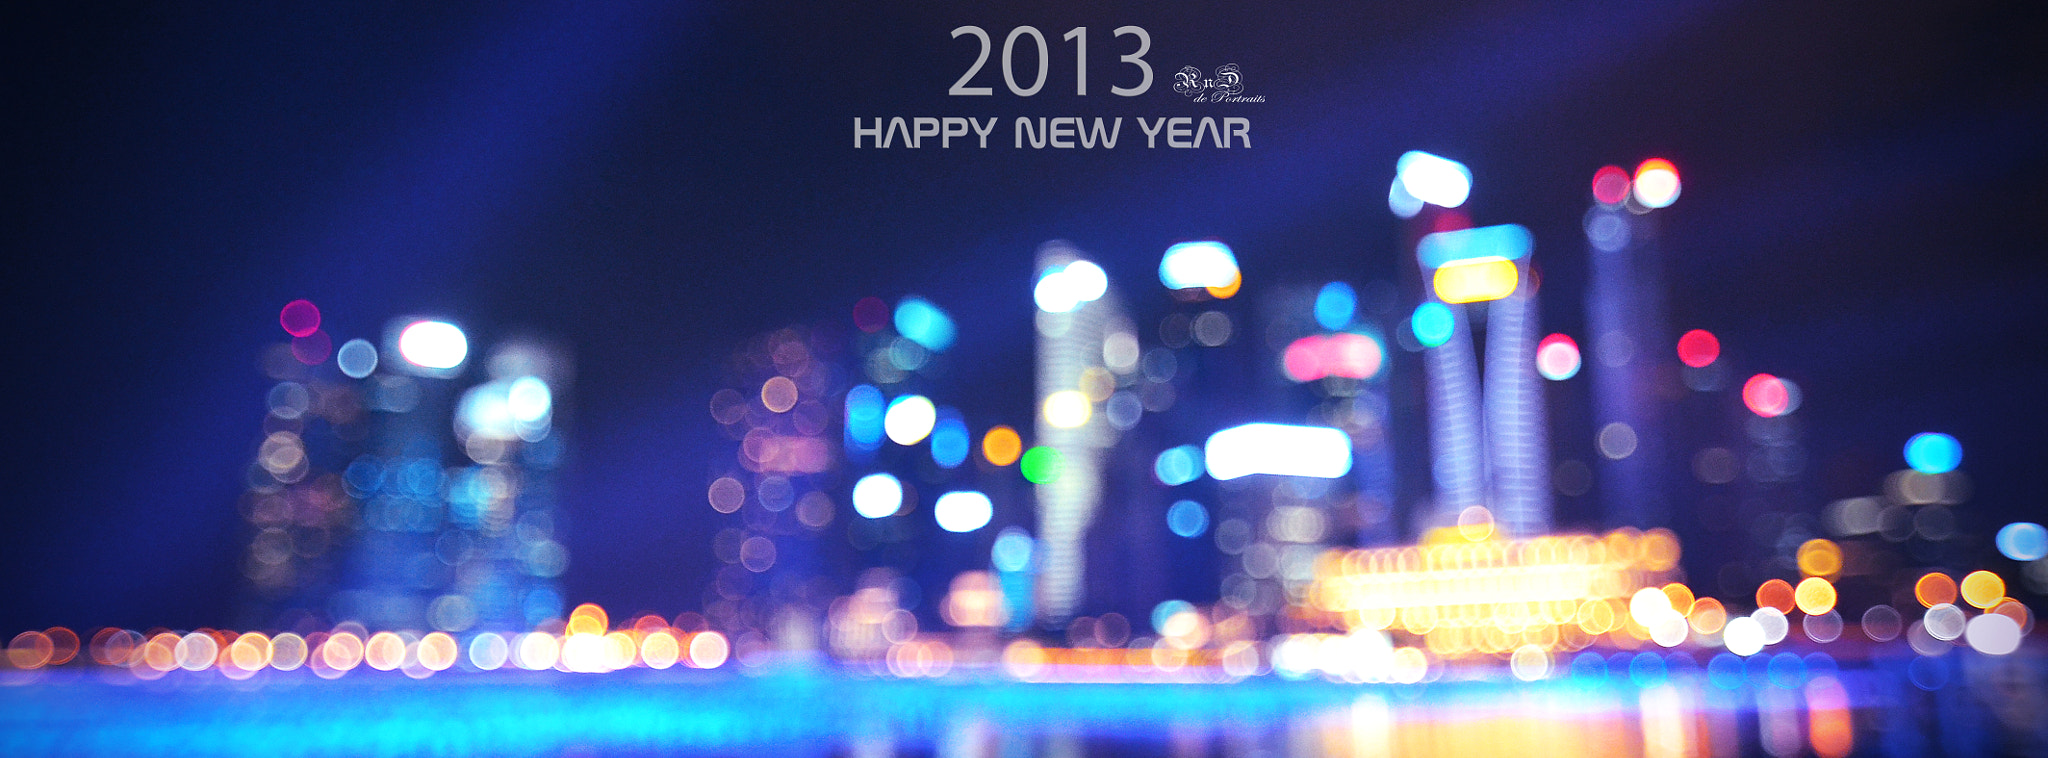 Photograph Happy New Year 2013 by RandyTan RnD.de.Portraits on 500px